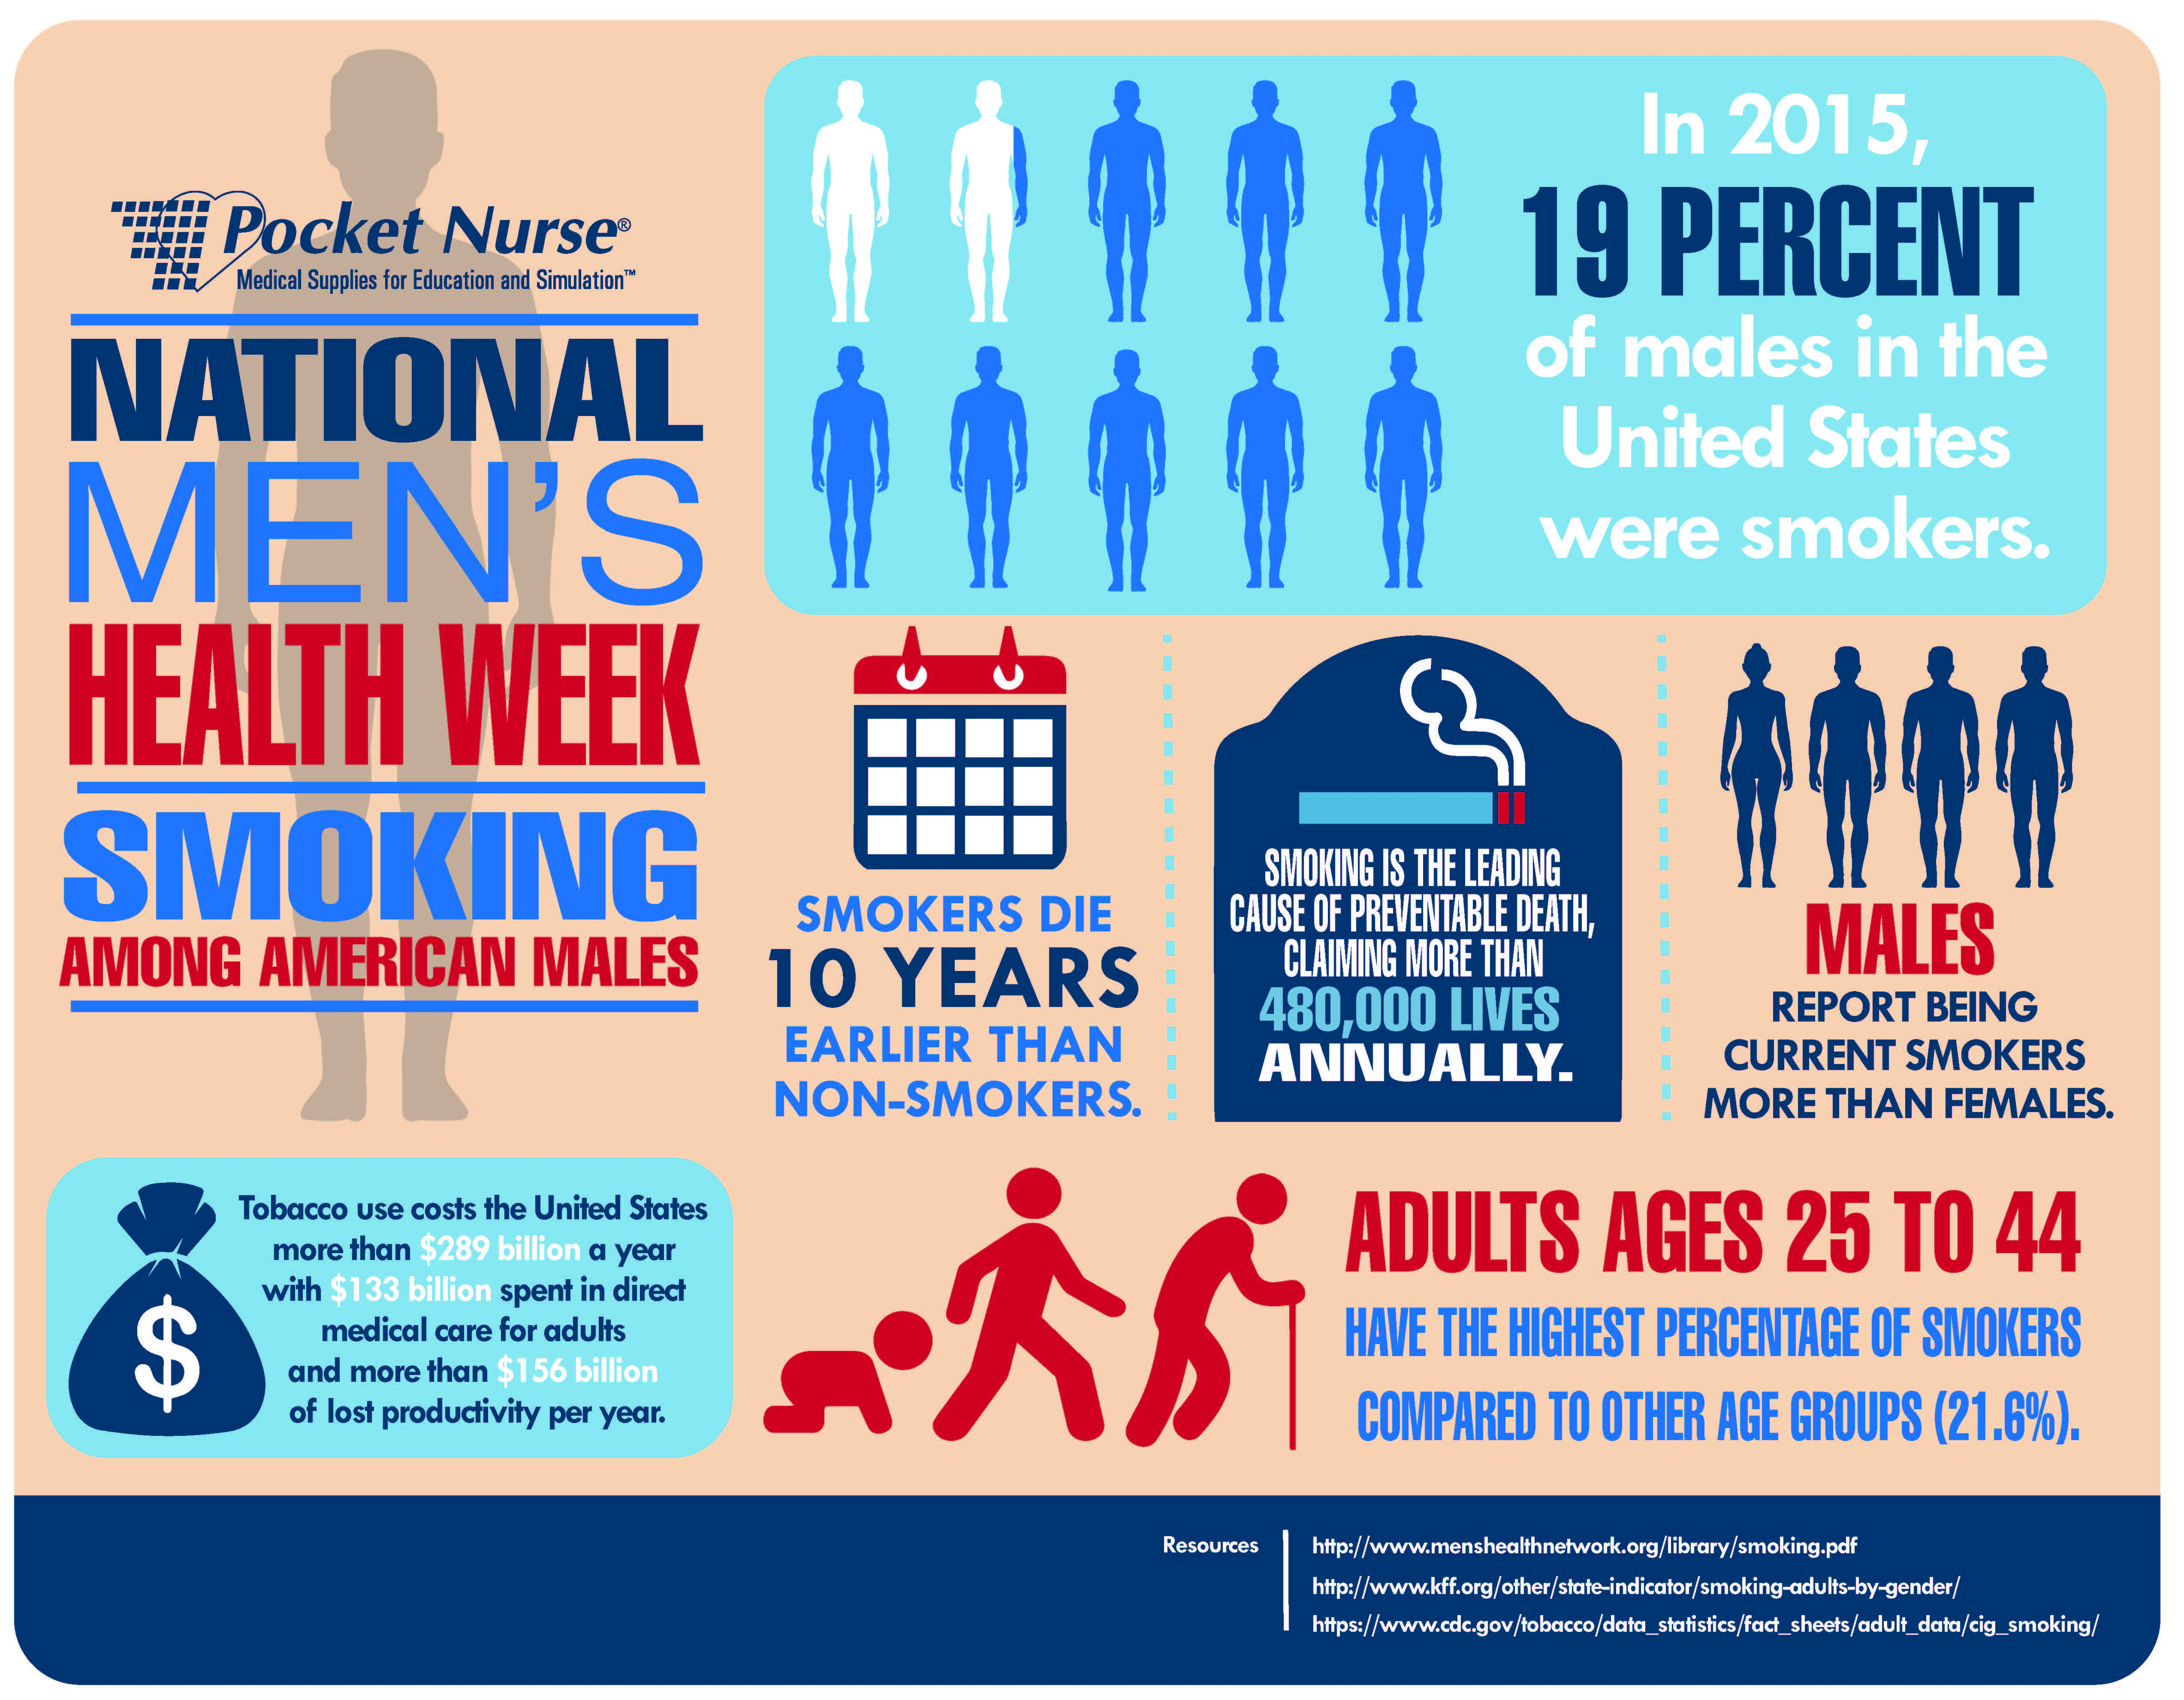 Improving Health by Quitting Smoking